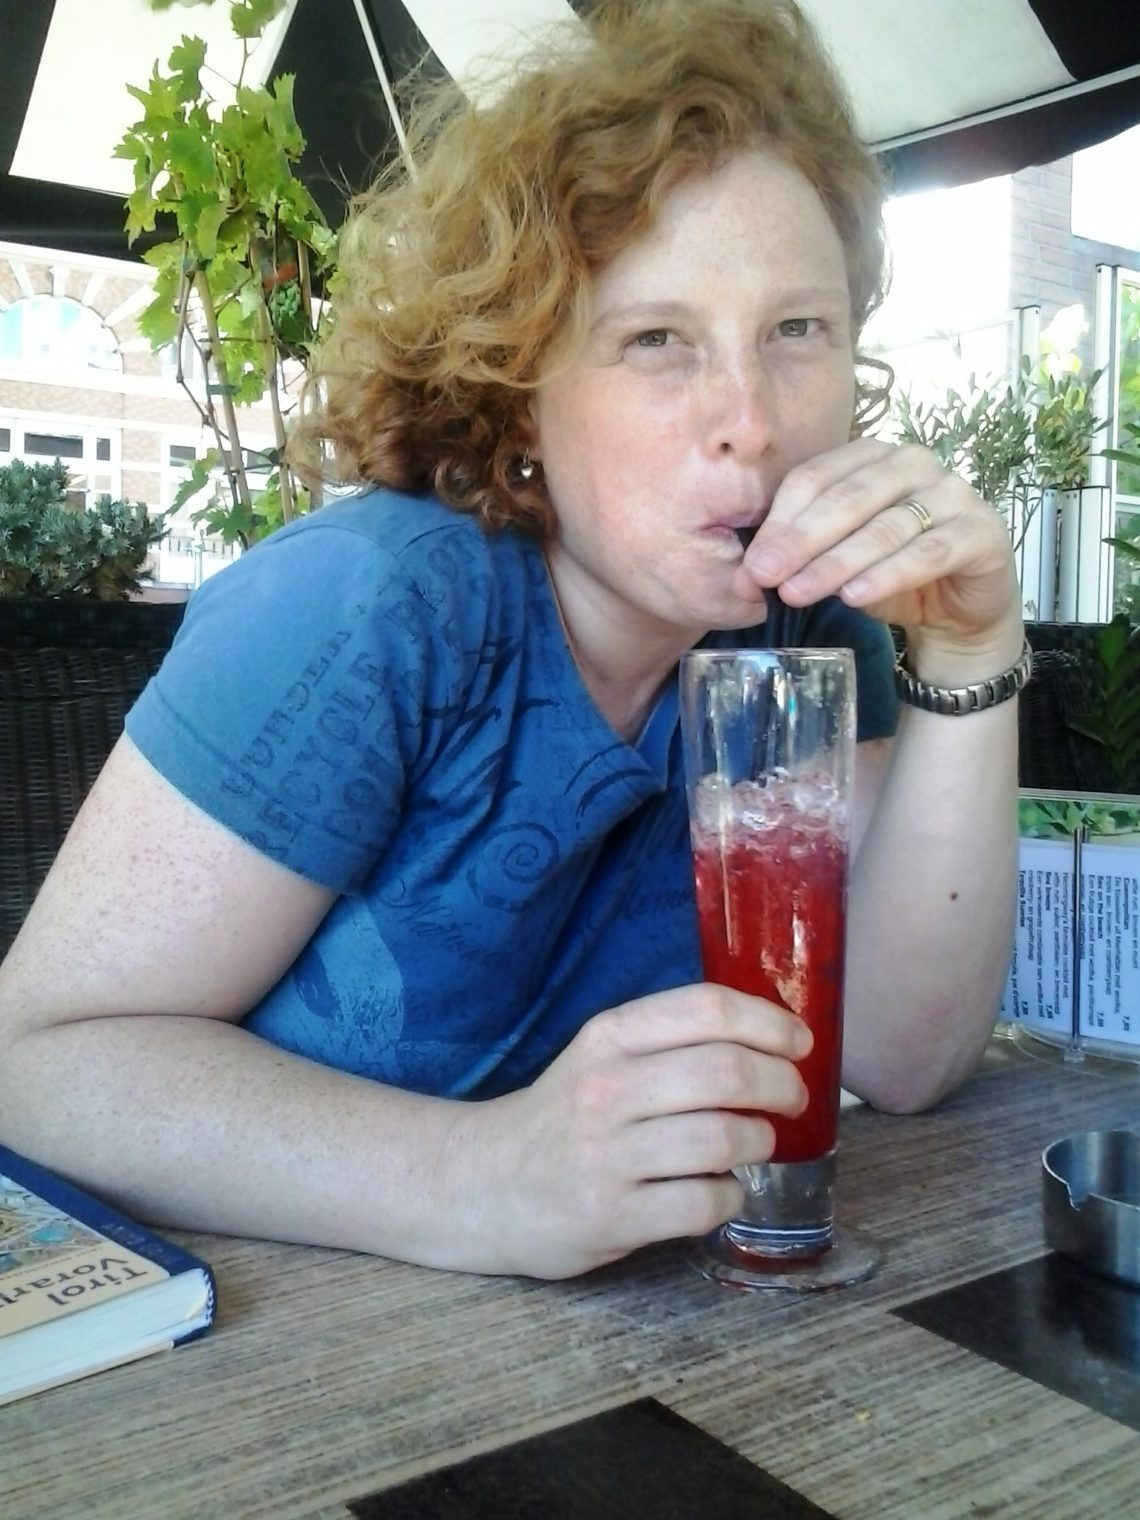 Picture of Cosette drinking a strawberry daiquiri. To visualise About us